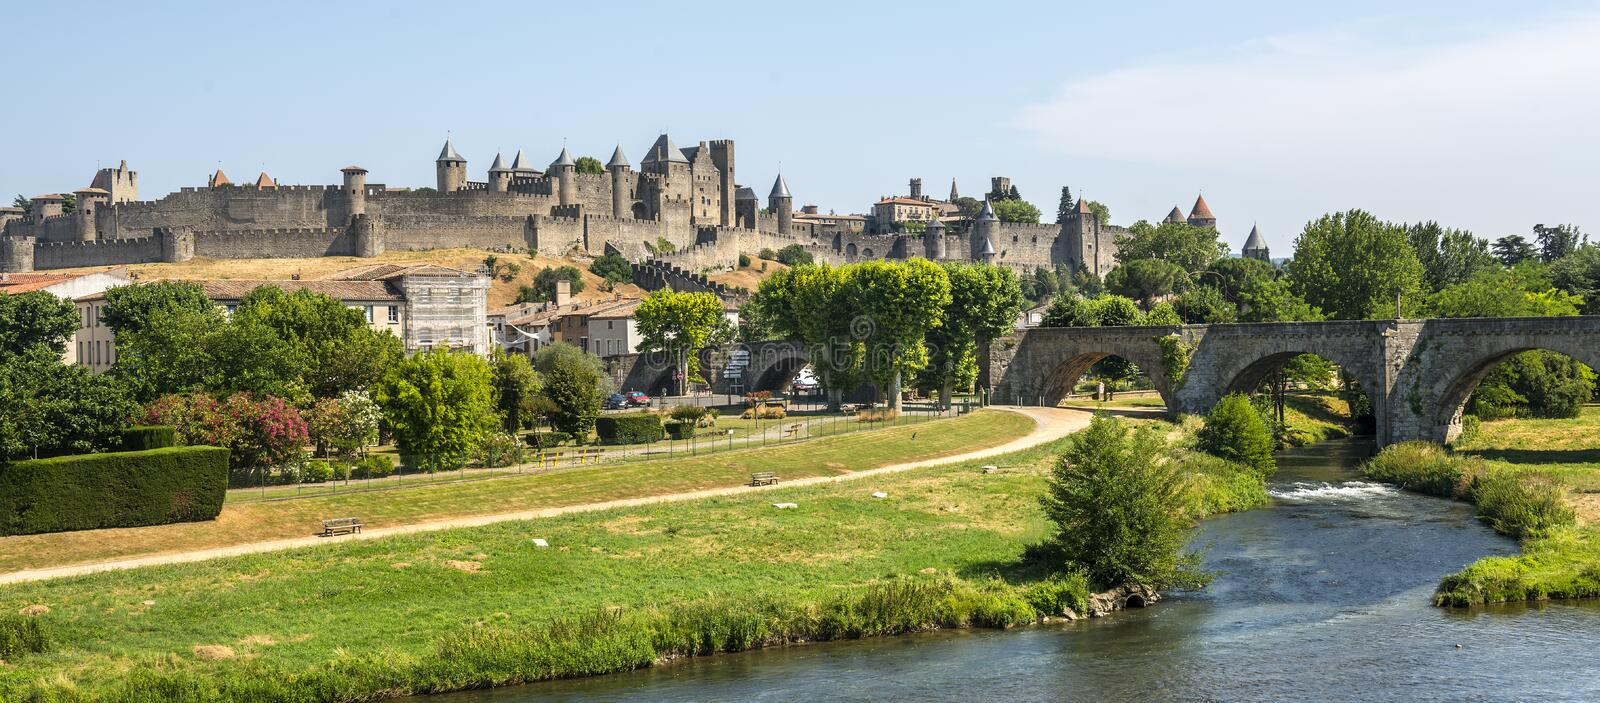 Download Carcassonne (France) stock image. Image of summer, outdoor - 35511239